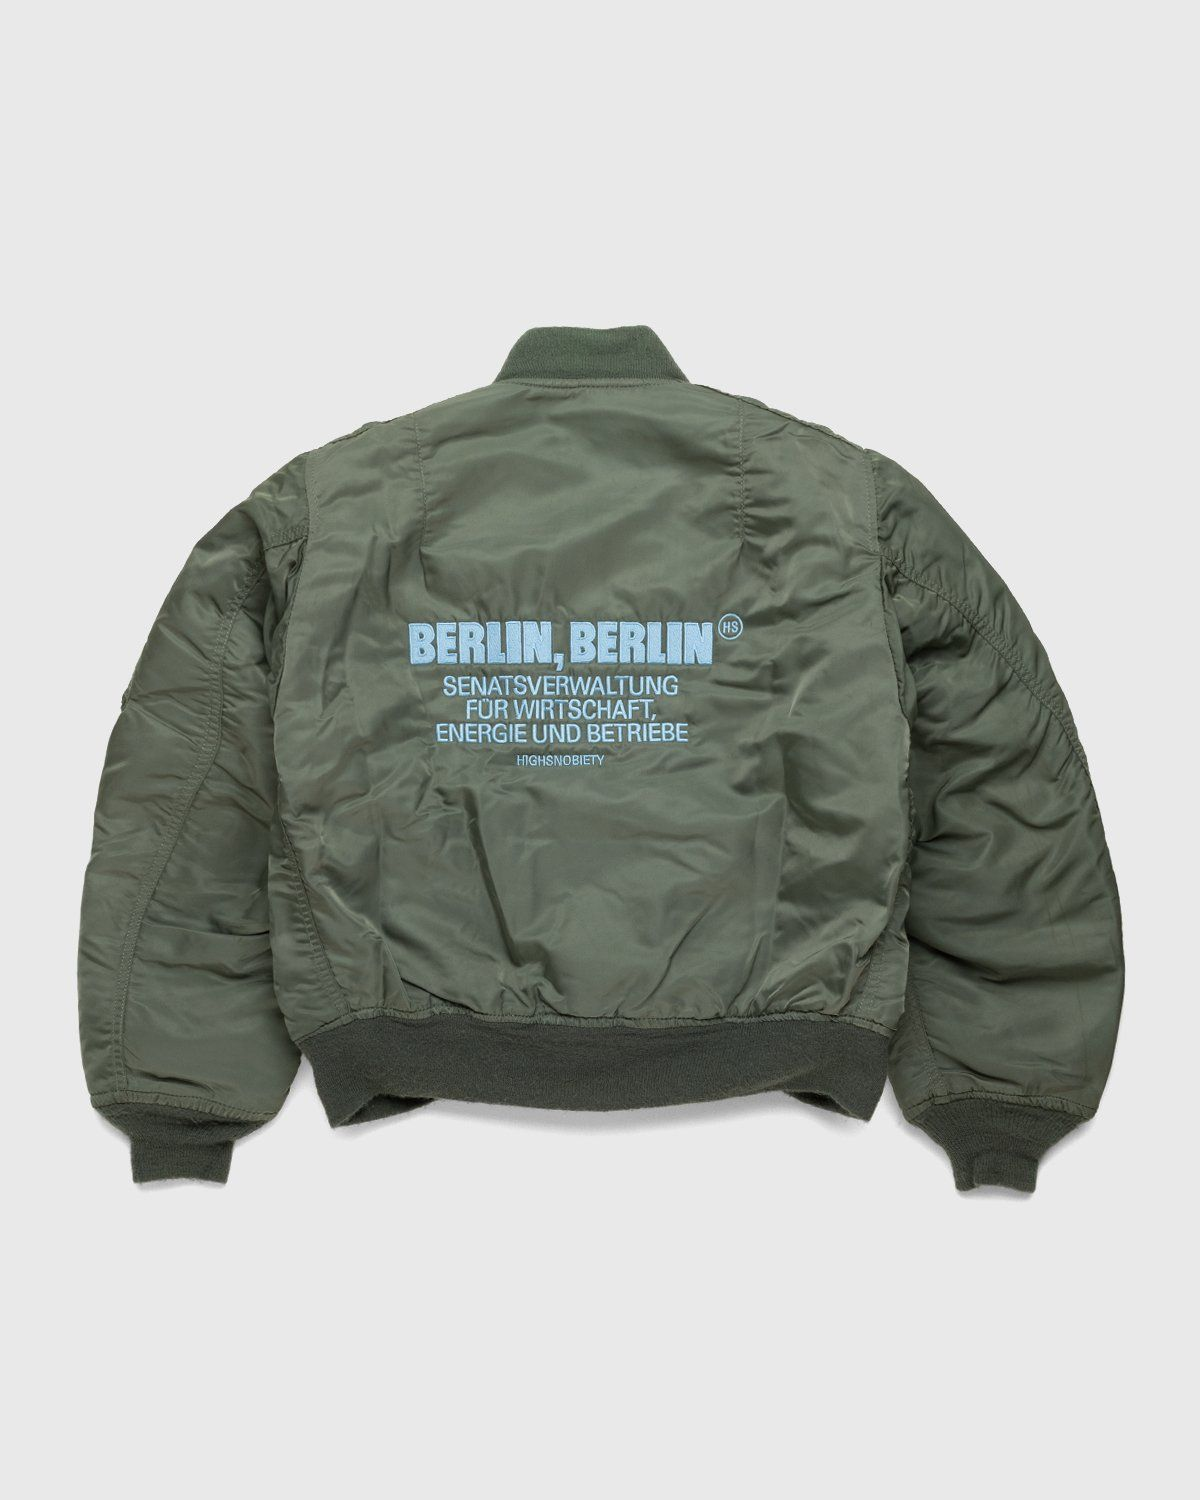 Highsnobiety – Berlin Berlin Embroidered Vintage MA-1 Green - Image 1